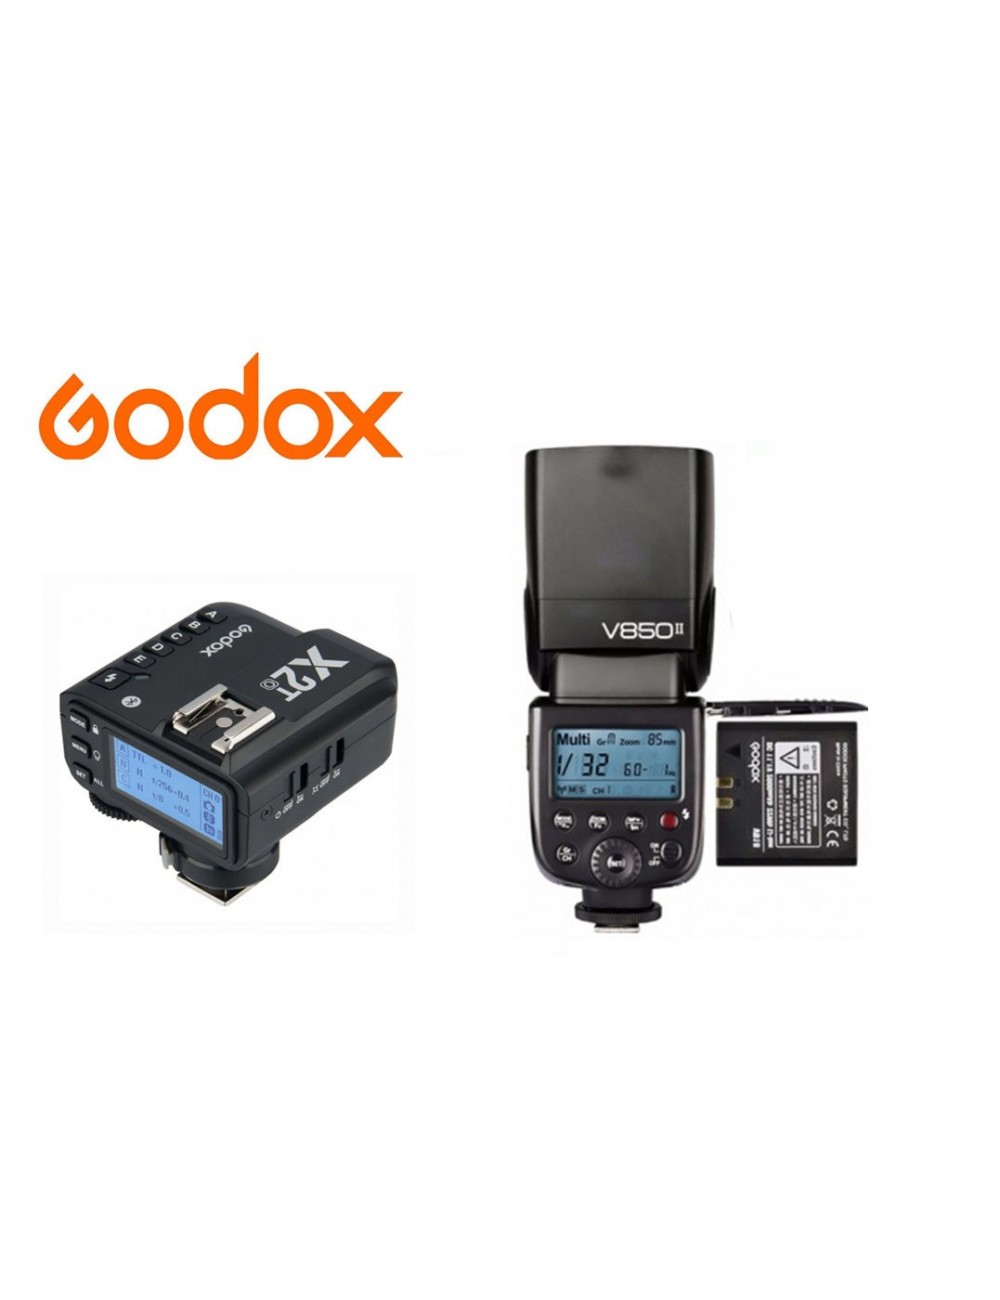 Kit flash Godox V850II de batería y disparador radio X2T dedicado